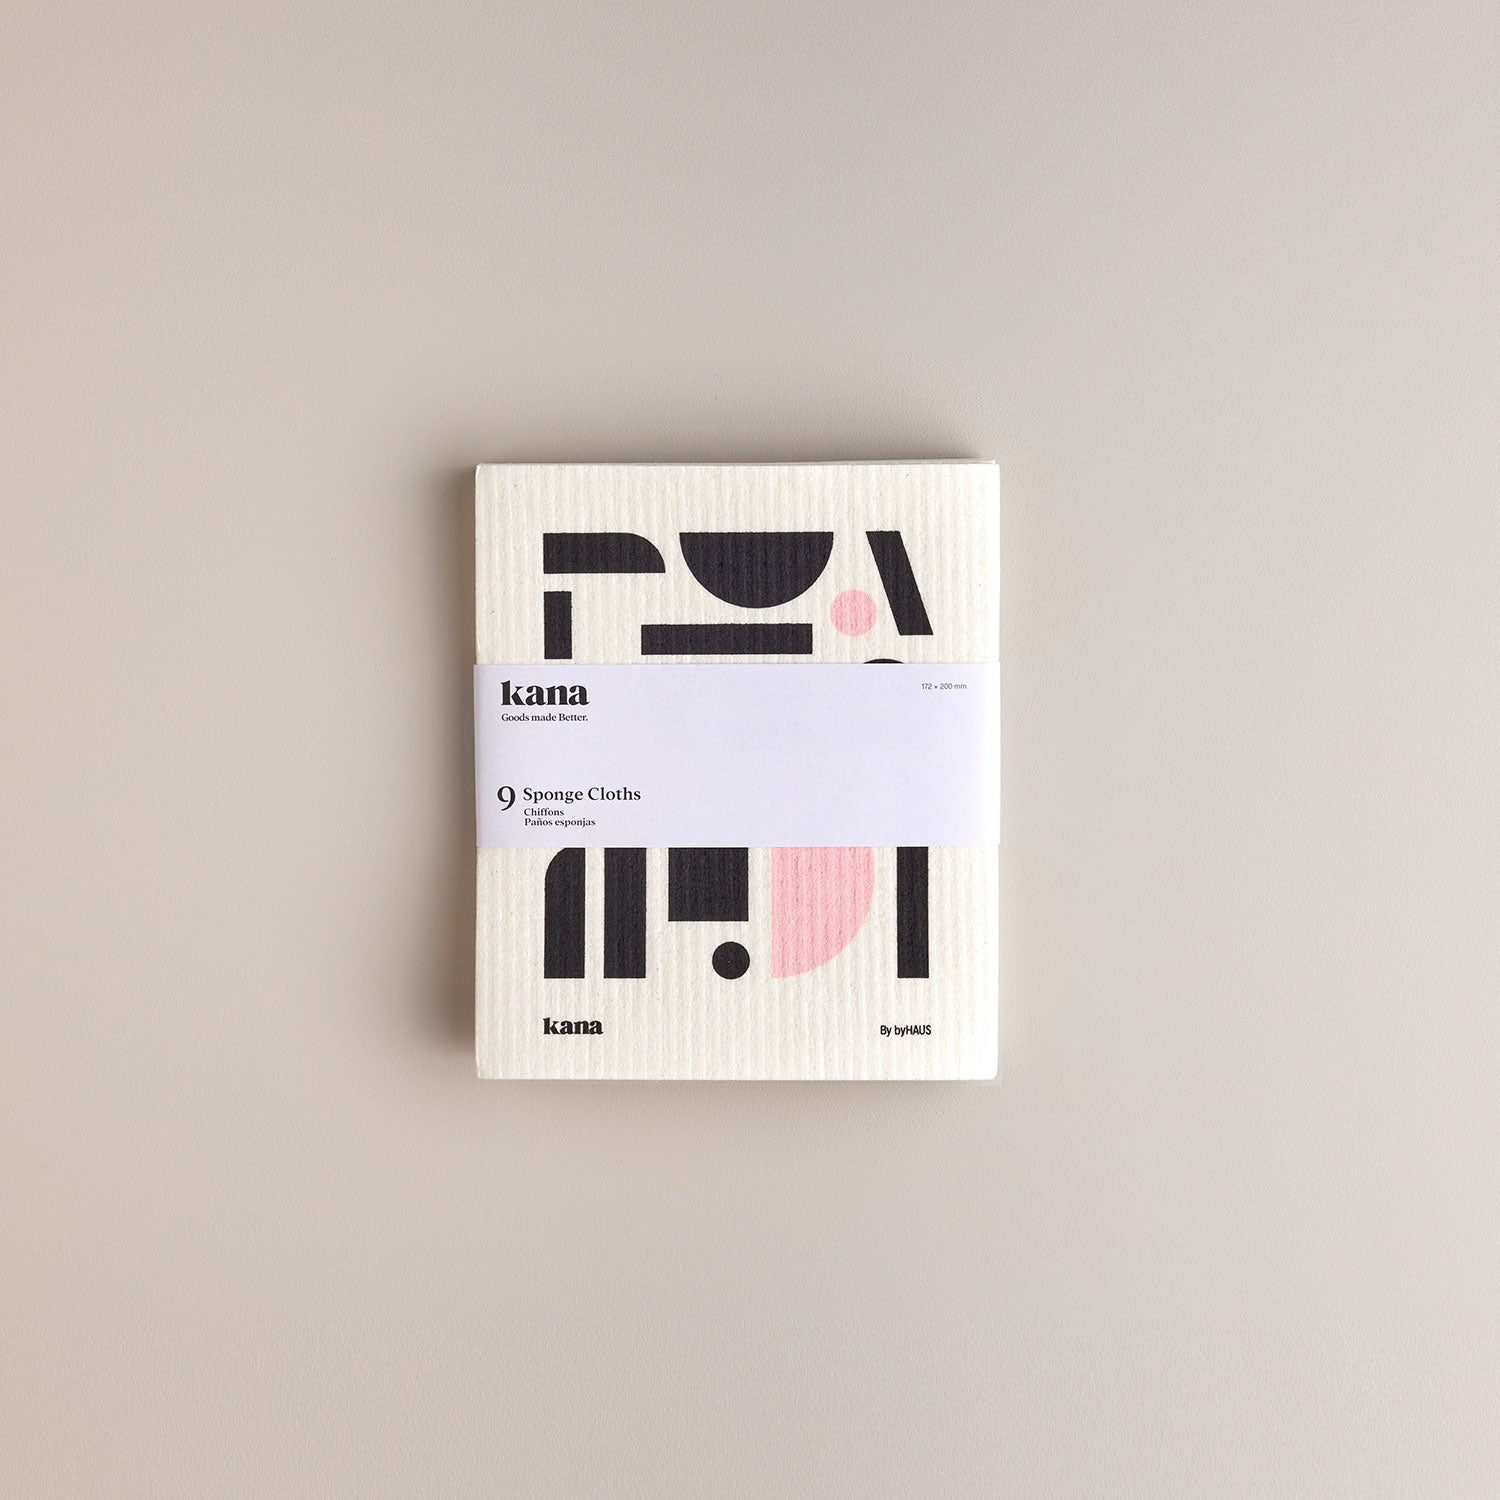 9 pack Swedish dishcloths designed by ByHaus